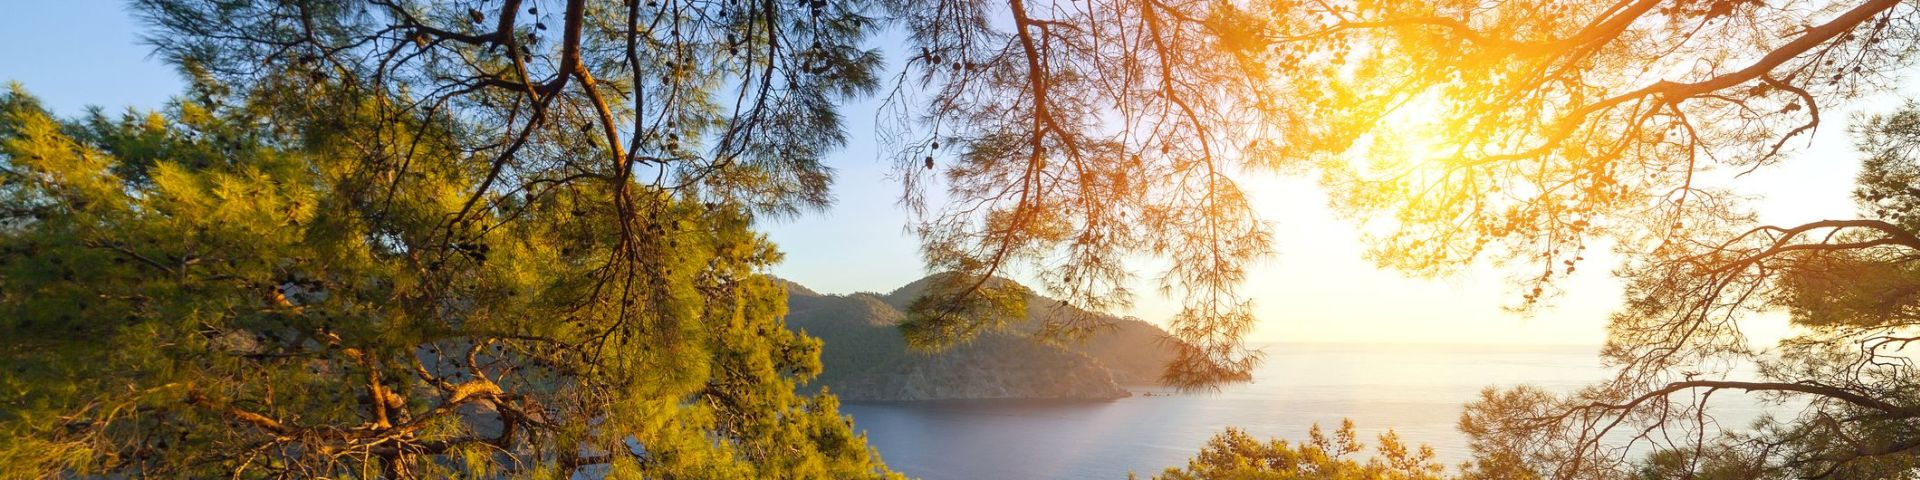 Last minute to the Turkish Riviera - from the SWISS Newsletter